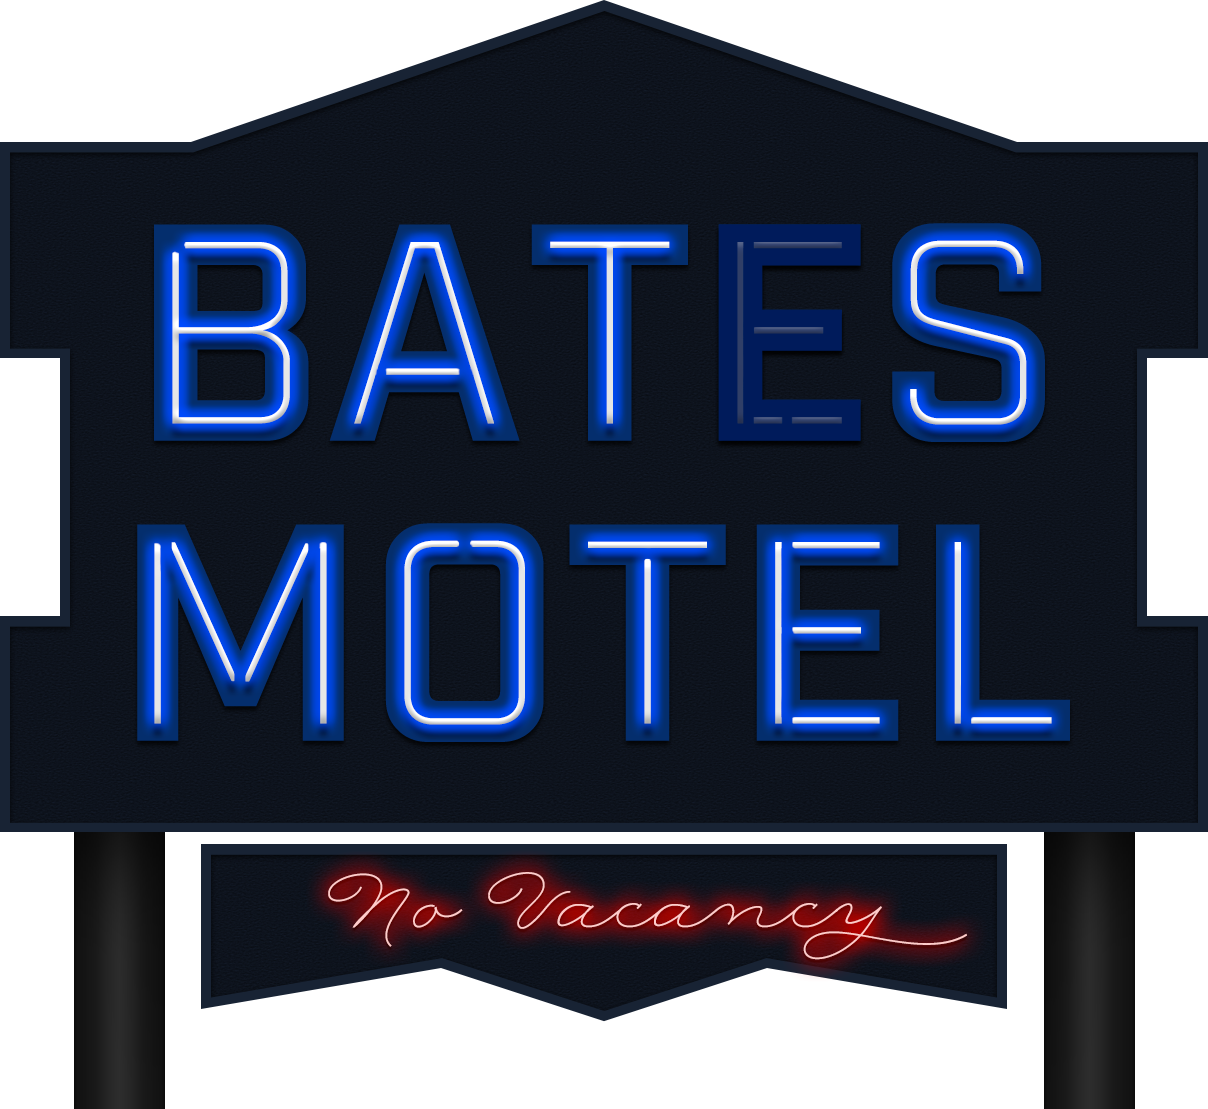 View Full Demo And Project Files For Bates Motel Flicker Sign. Performance Test Engineer Rent Manager Login. Best Financial Planners Veteran Student Loans. Vail Ski In Ski Out Hotels Why Back Up Files. Guard Recruiting Assistance Program. Reseller Hosting Unlimited Bandwidth. Beauty Schools In Bakersfield. Master Supply Chain Management. Mortgage Broker Minneapolis Peterbilt Of Ct